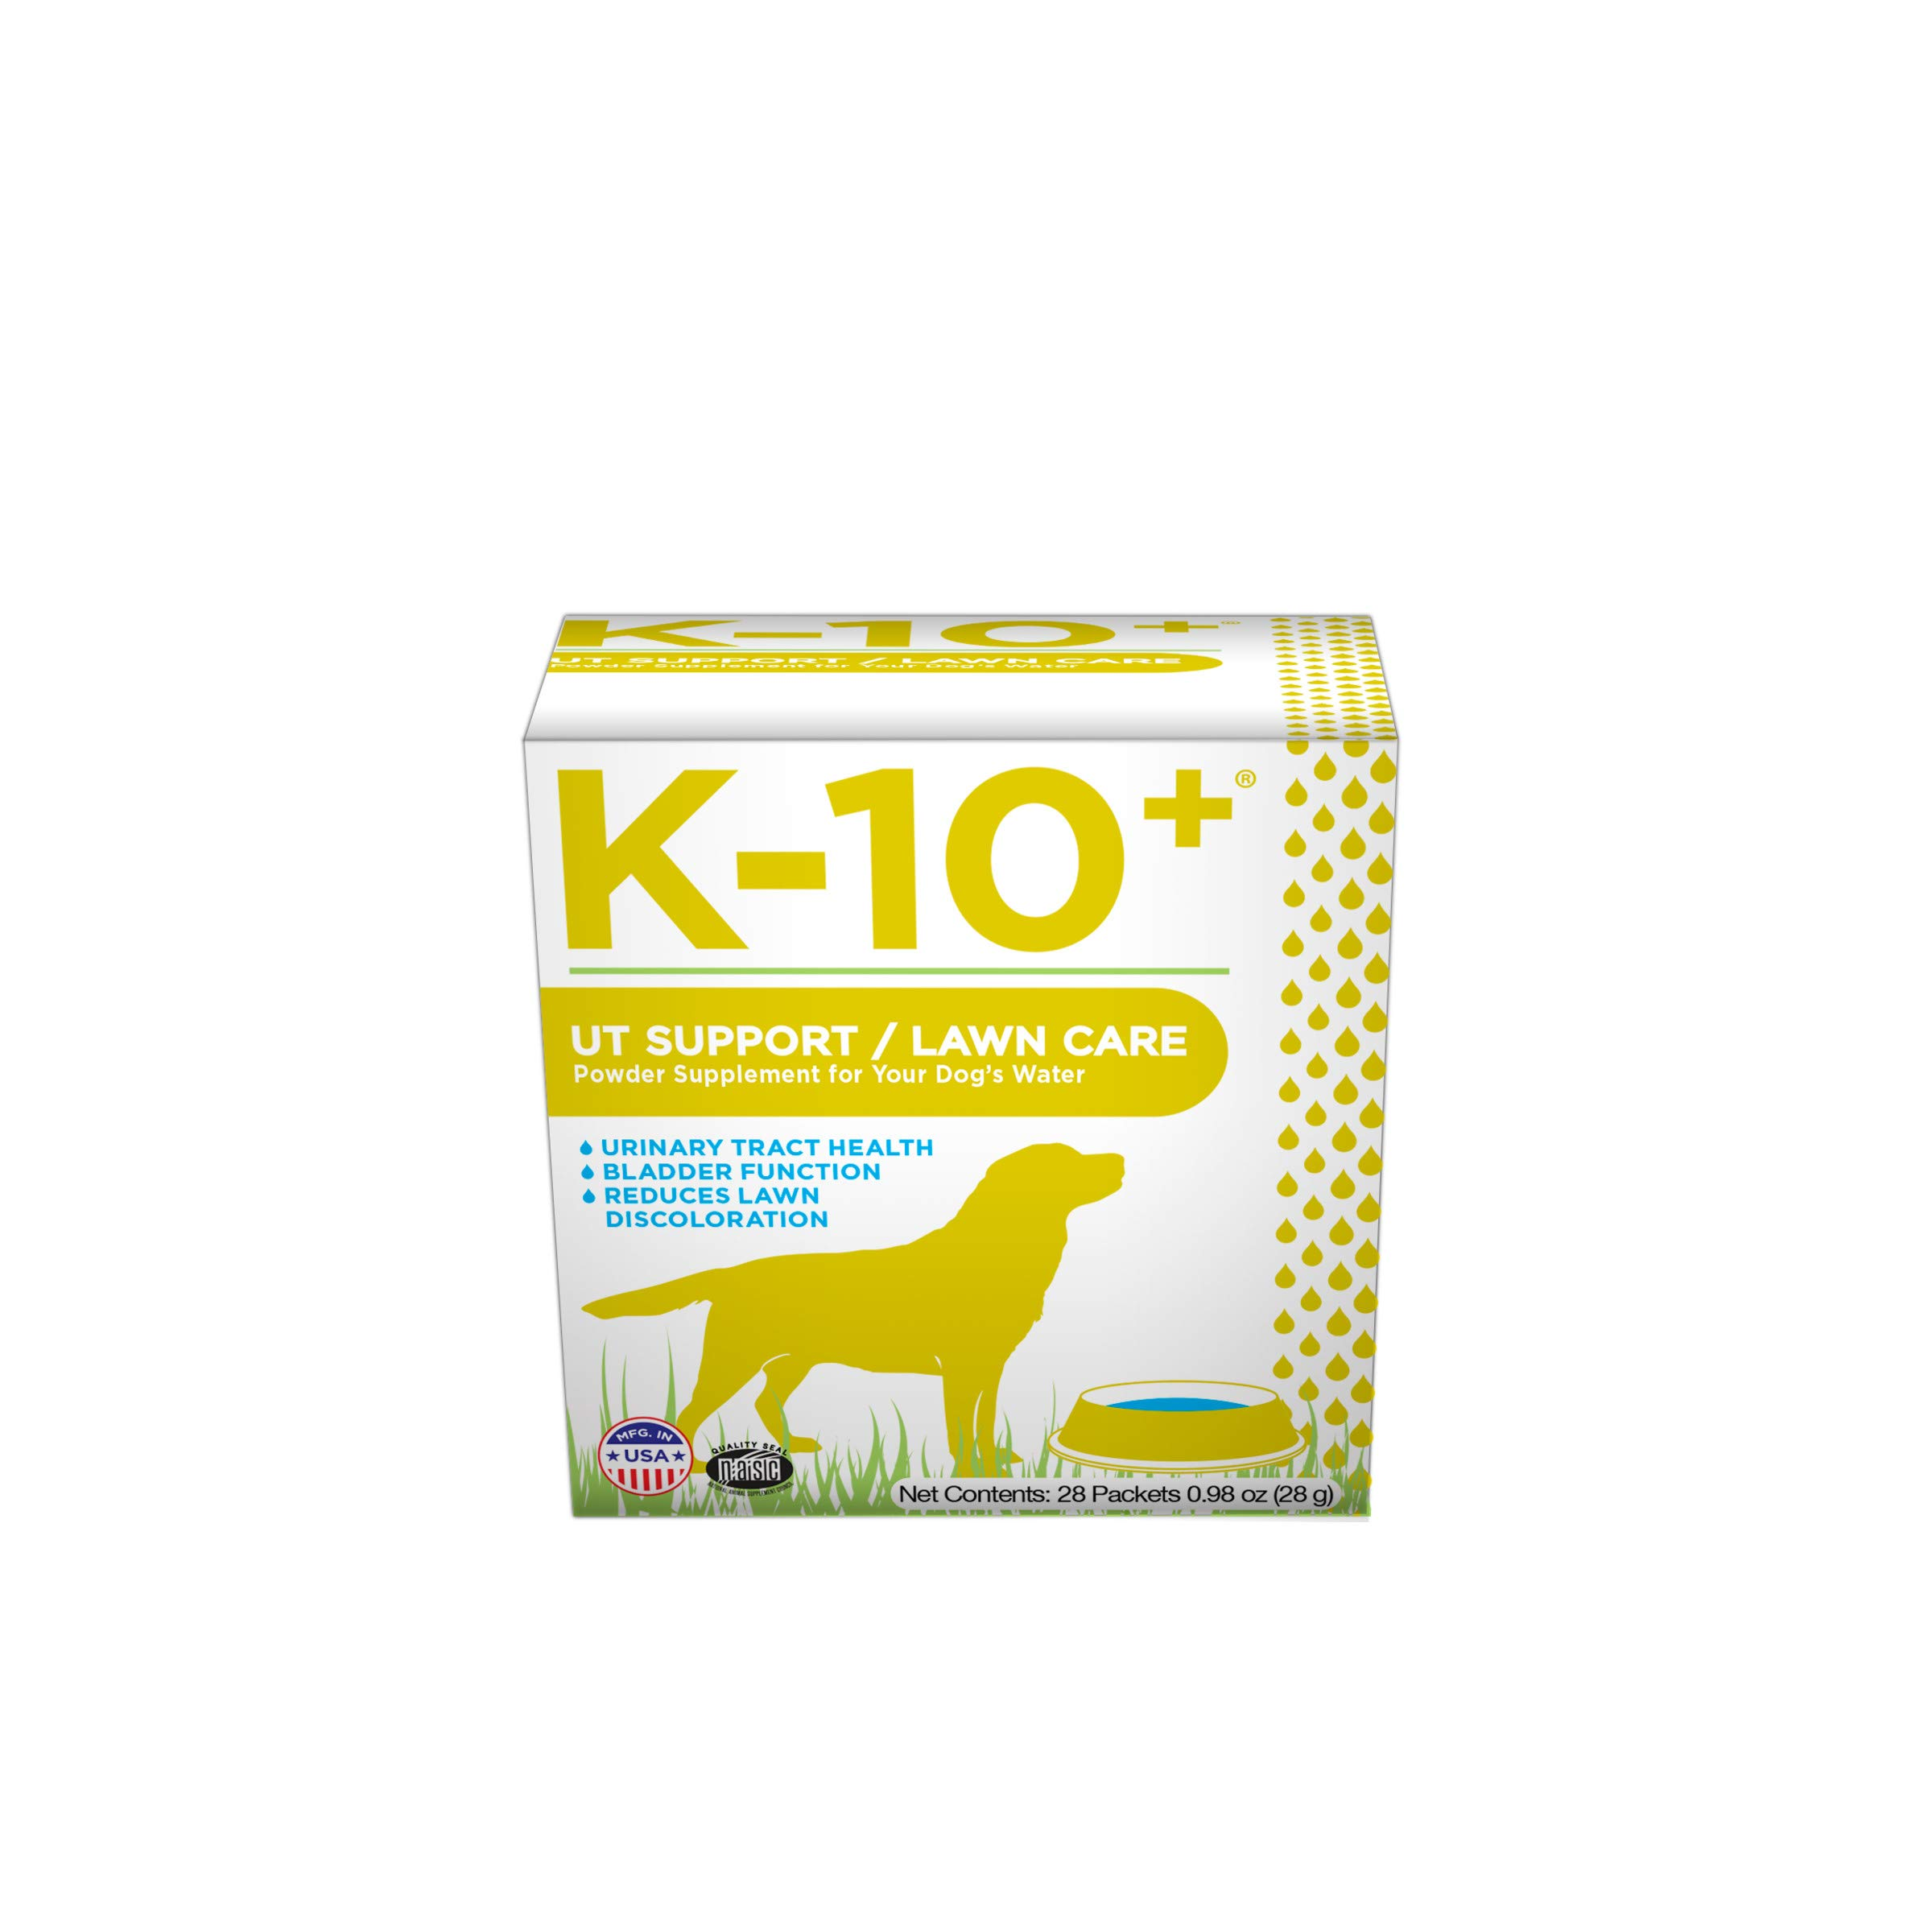 K-10+ Urinary Tract Health Supplement Powder for Dogs, UT/Lawn Care for Your Dog's Water - 28 ct. Box by K-10+